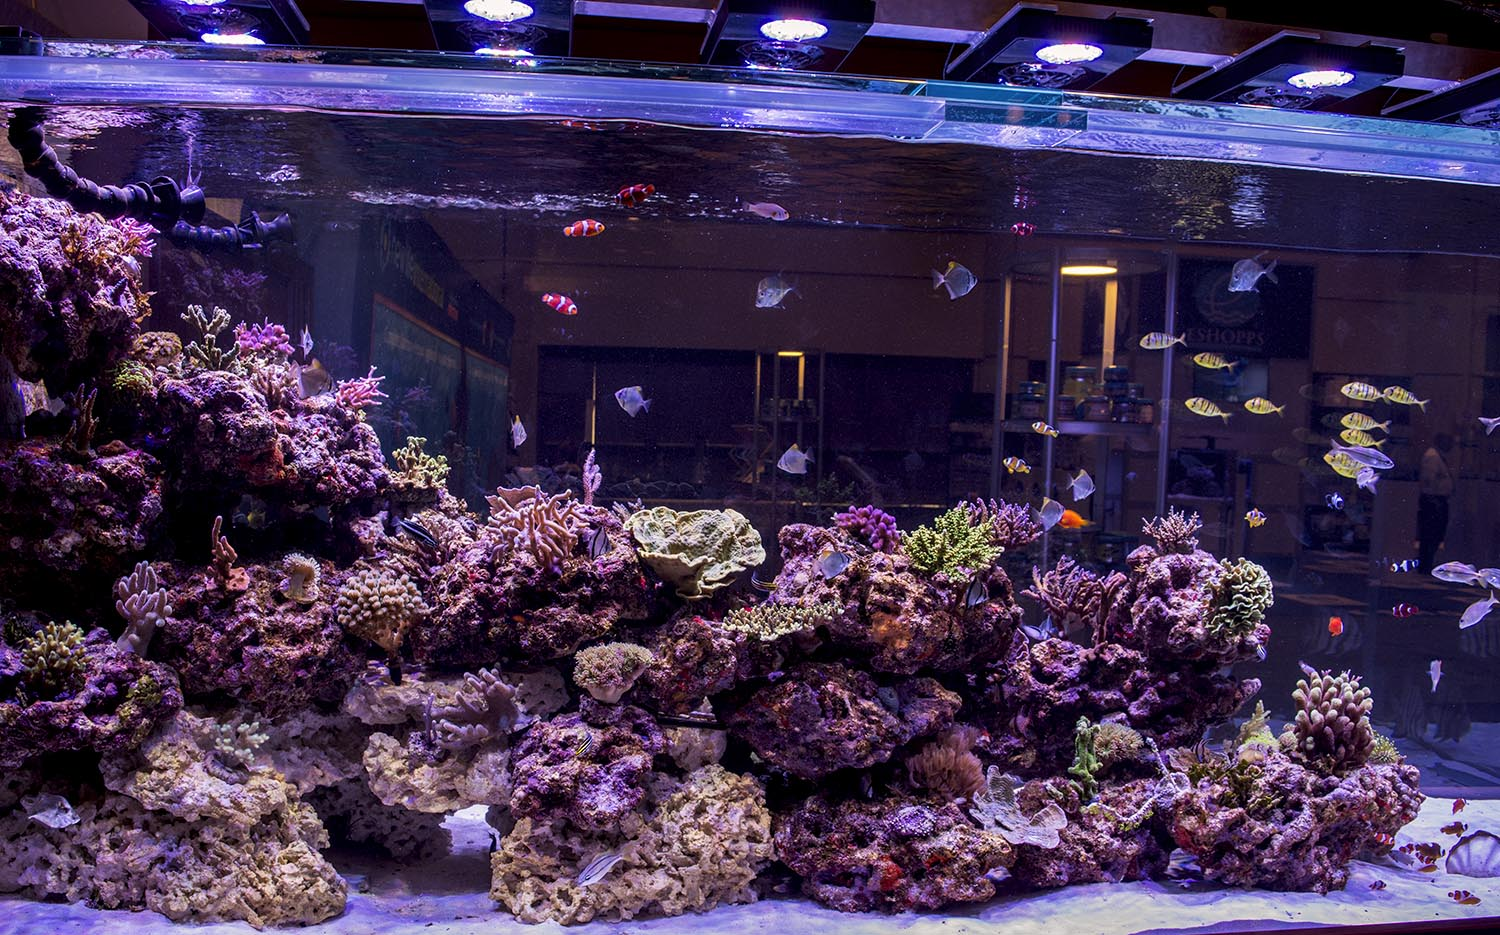 The awe inspiring 100% aquaculture tank from Boyd/Reef Aquaria Design